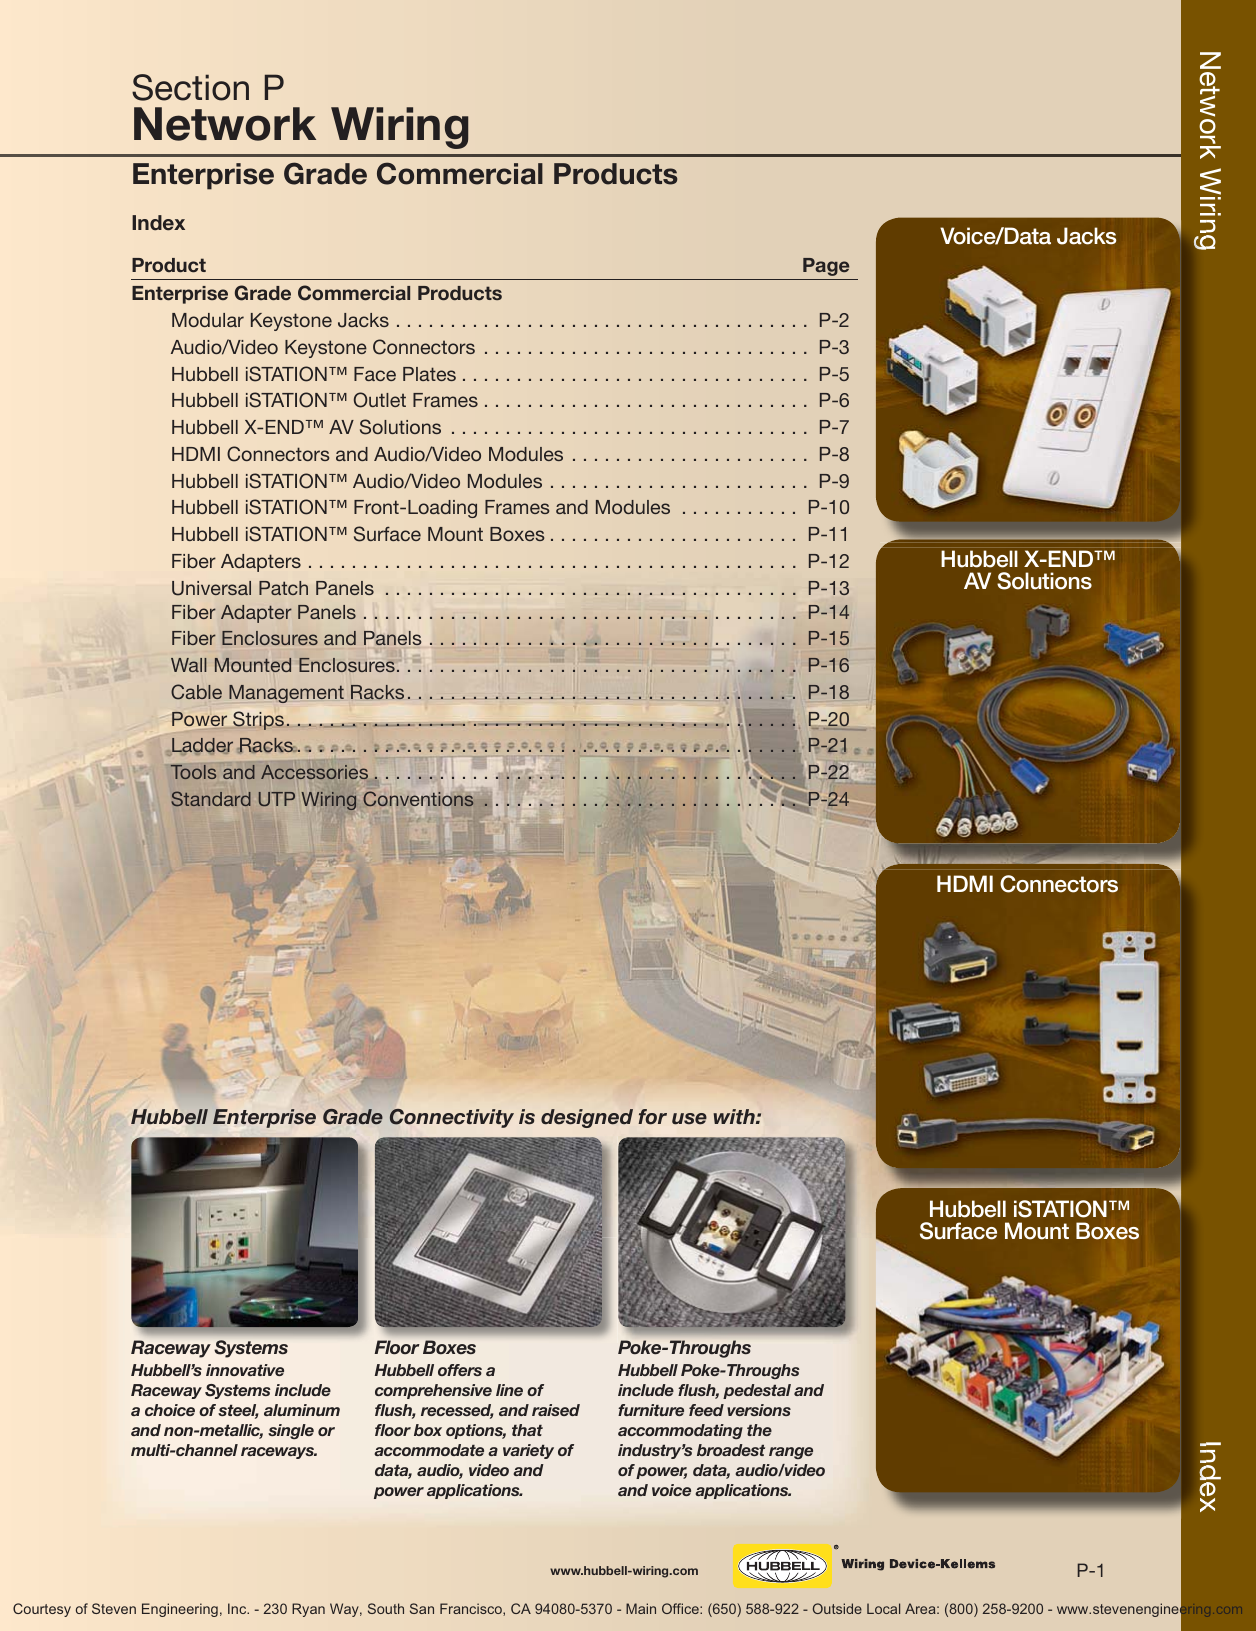 Hubbell Wiring Devices Kellems Catalog Flush Mount Output Jack